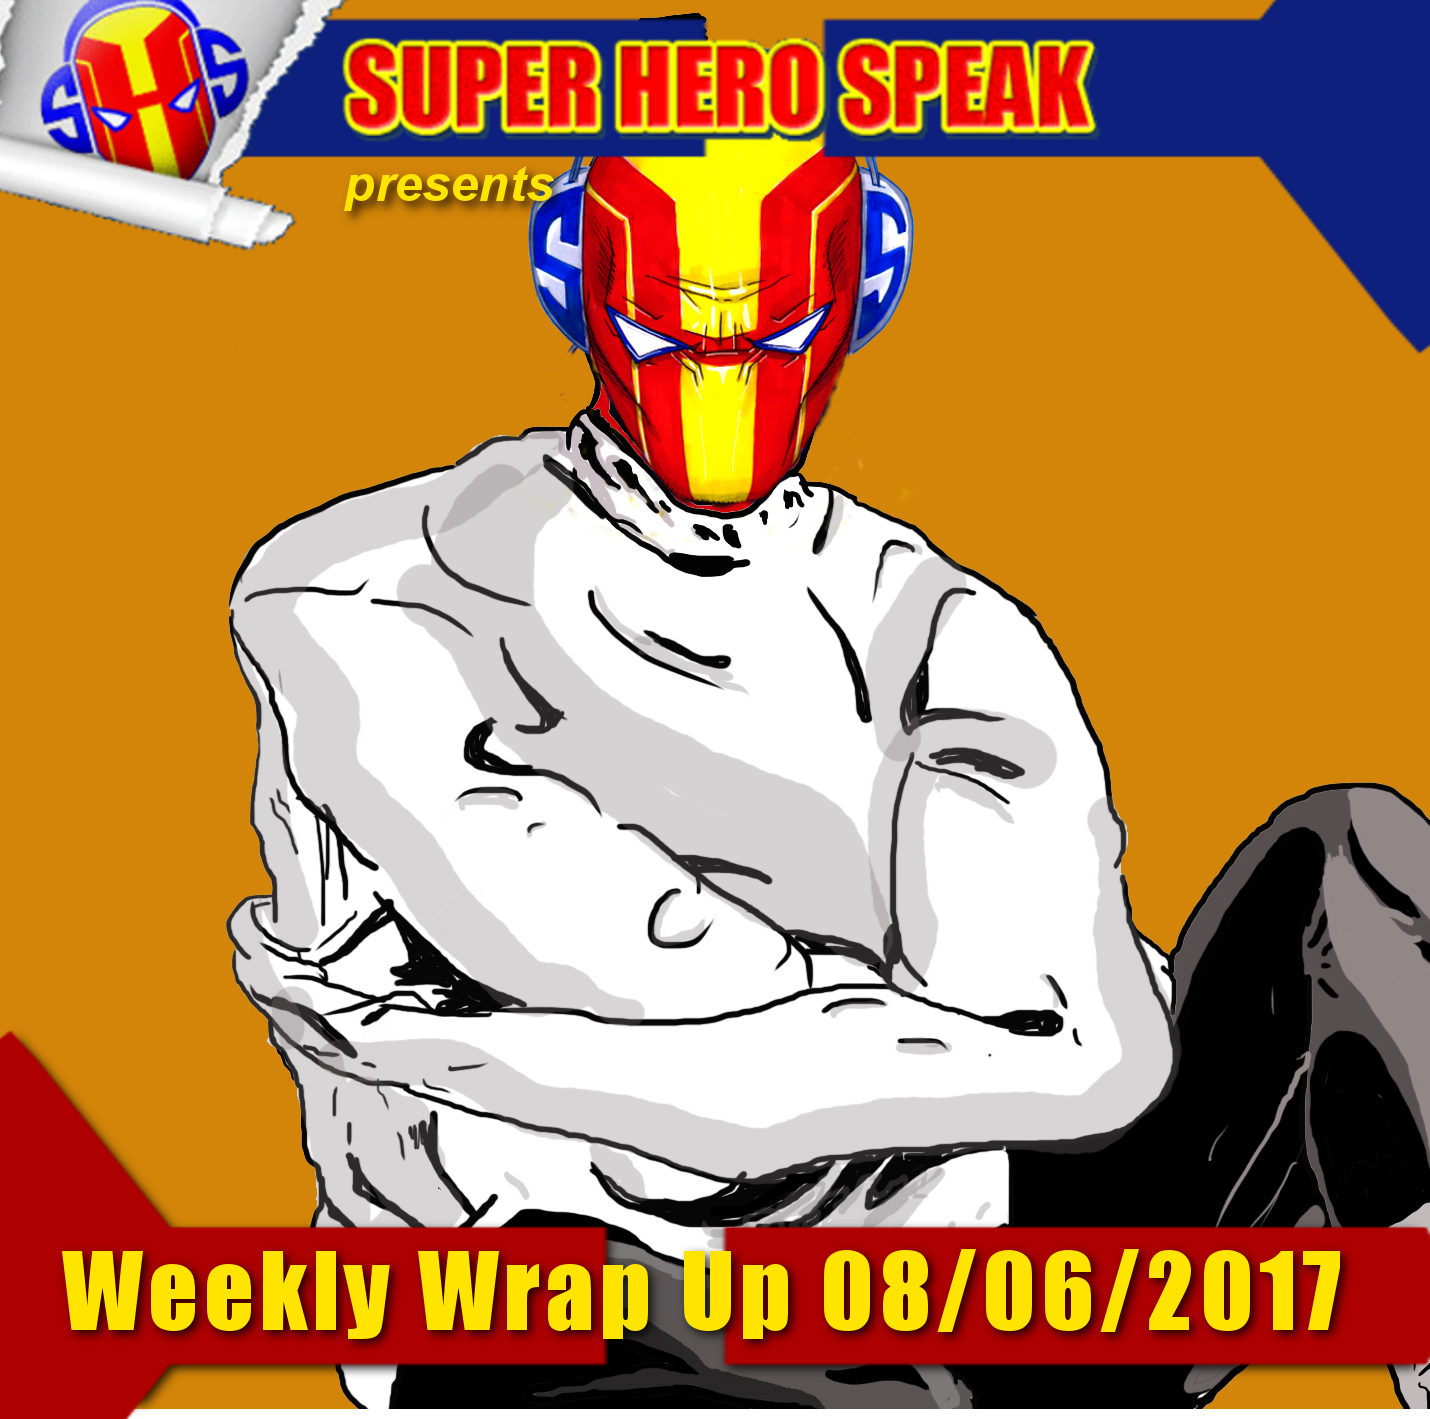 SHS Weekly Wrap Up 08/06/2017